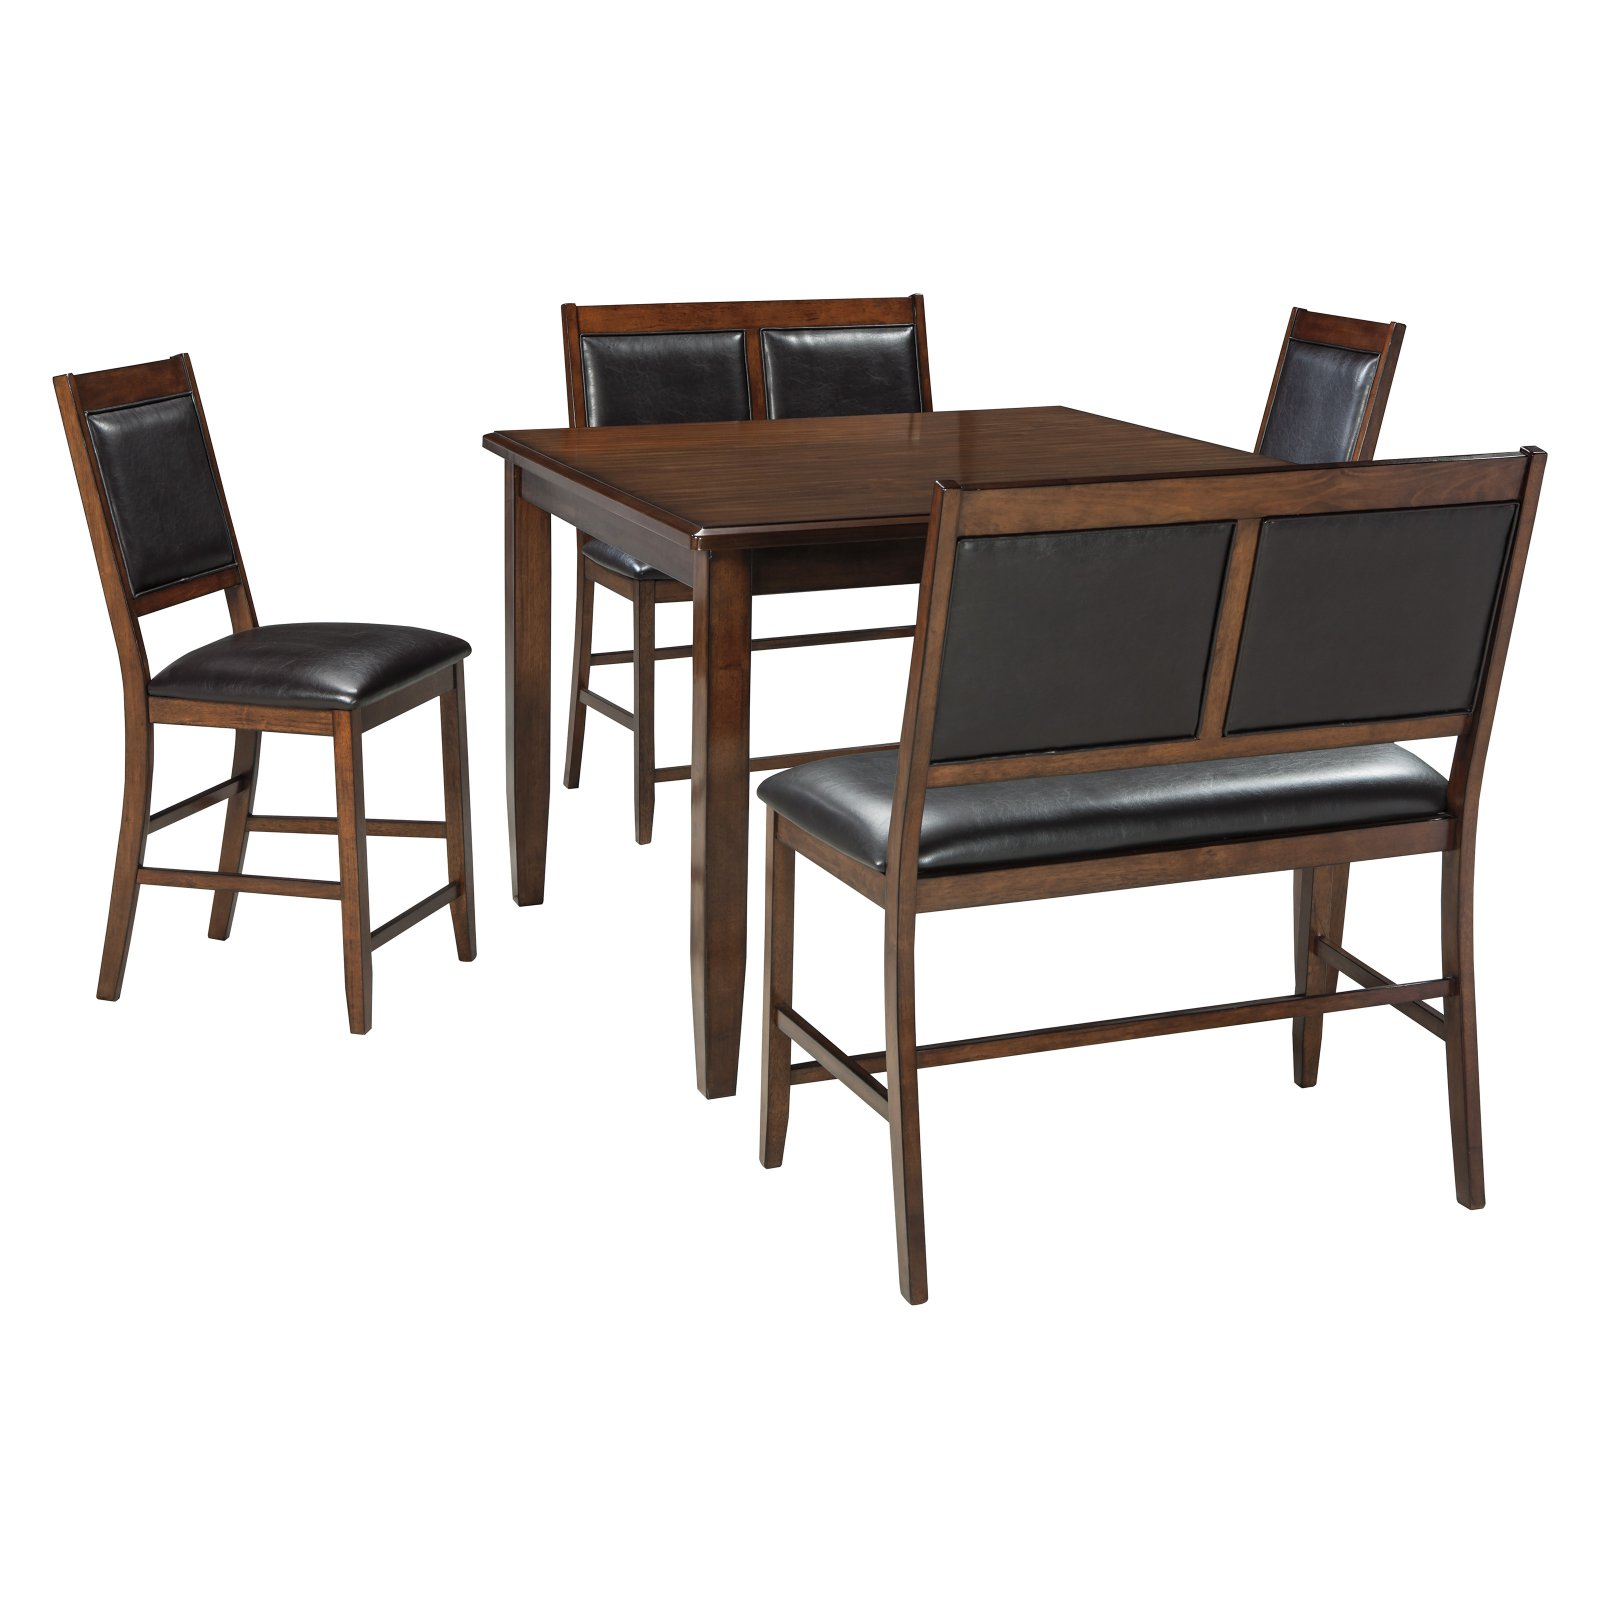 Ashley Furniture Meredy 5 Piece Counter Height Dining Table Set In Brown Walmart Com Walmart Com